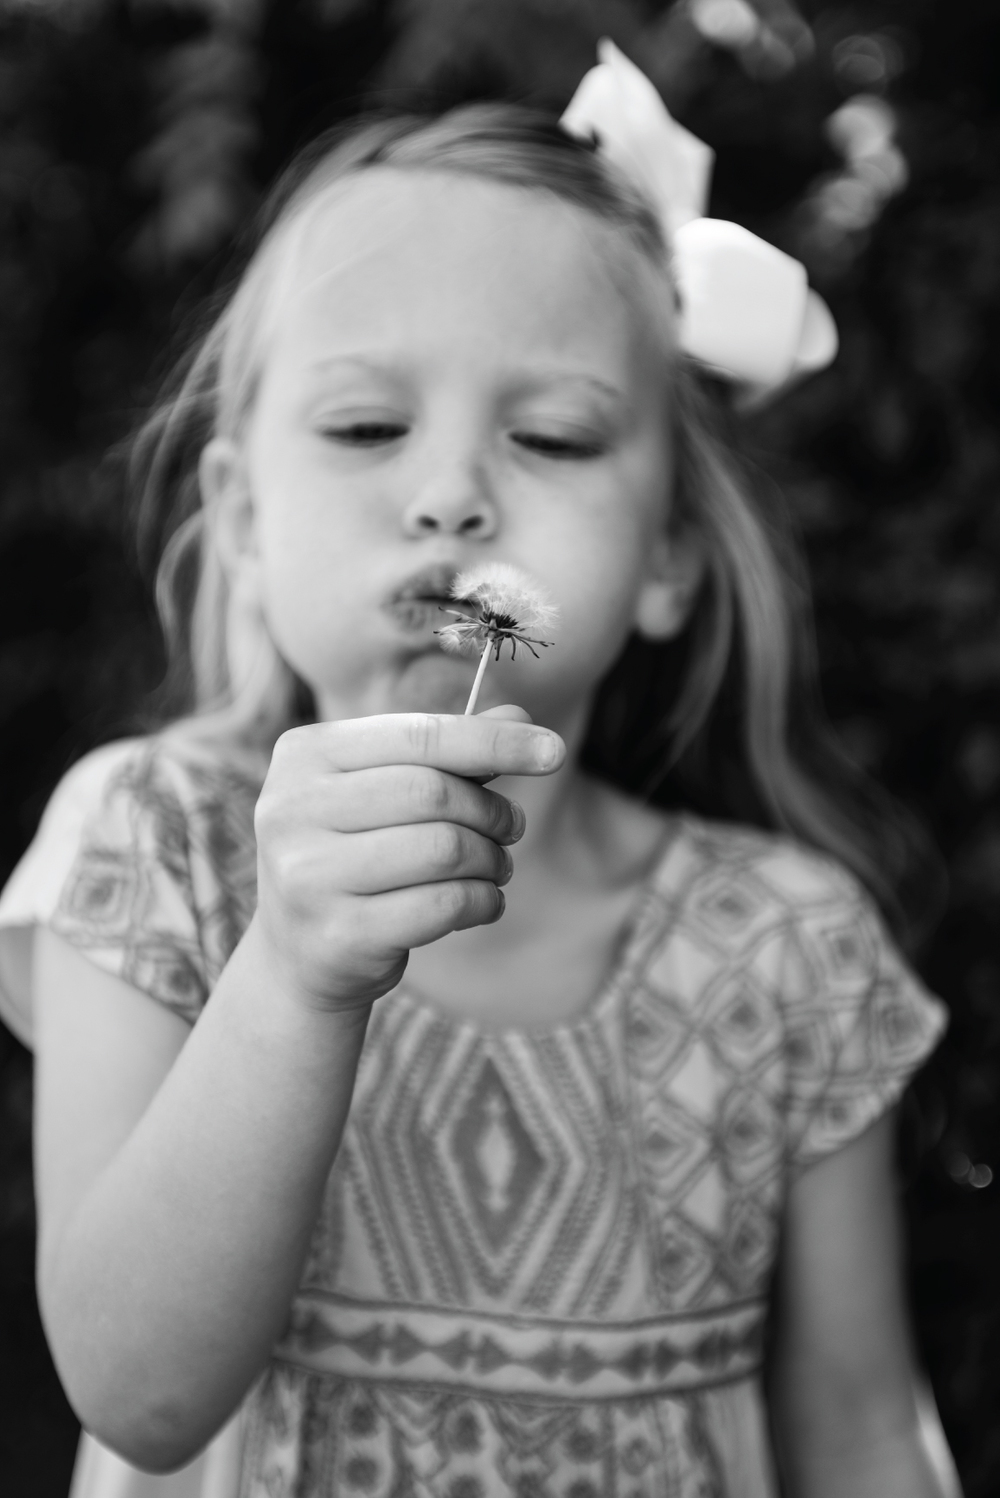 lifestyle children photography, children photography, ashley marie myers, photographing children, how to photograph children, summer, old navy, jellies, children photos, photography of children